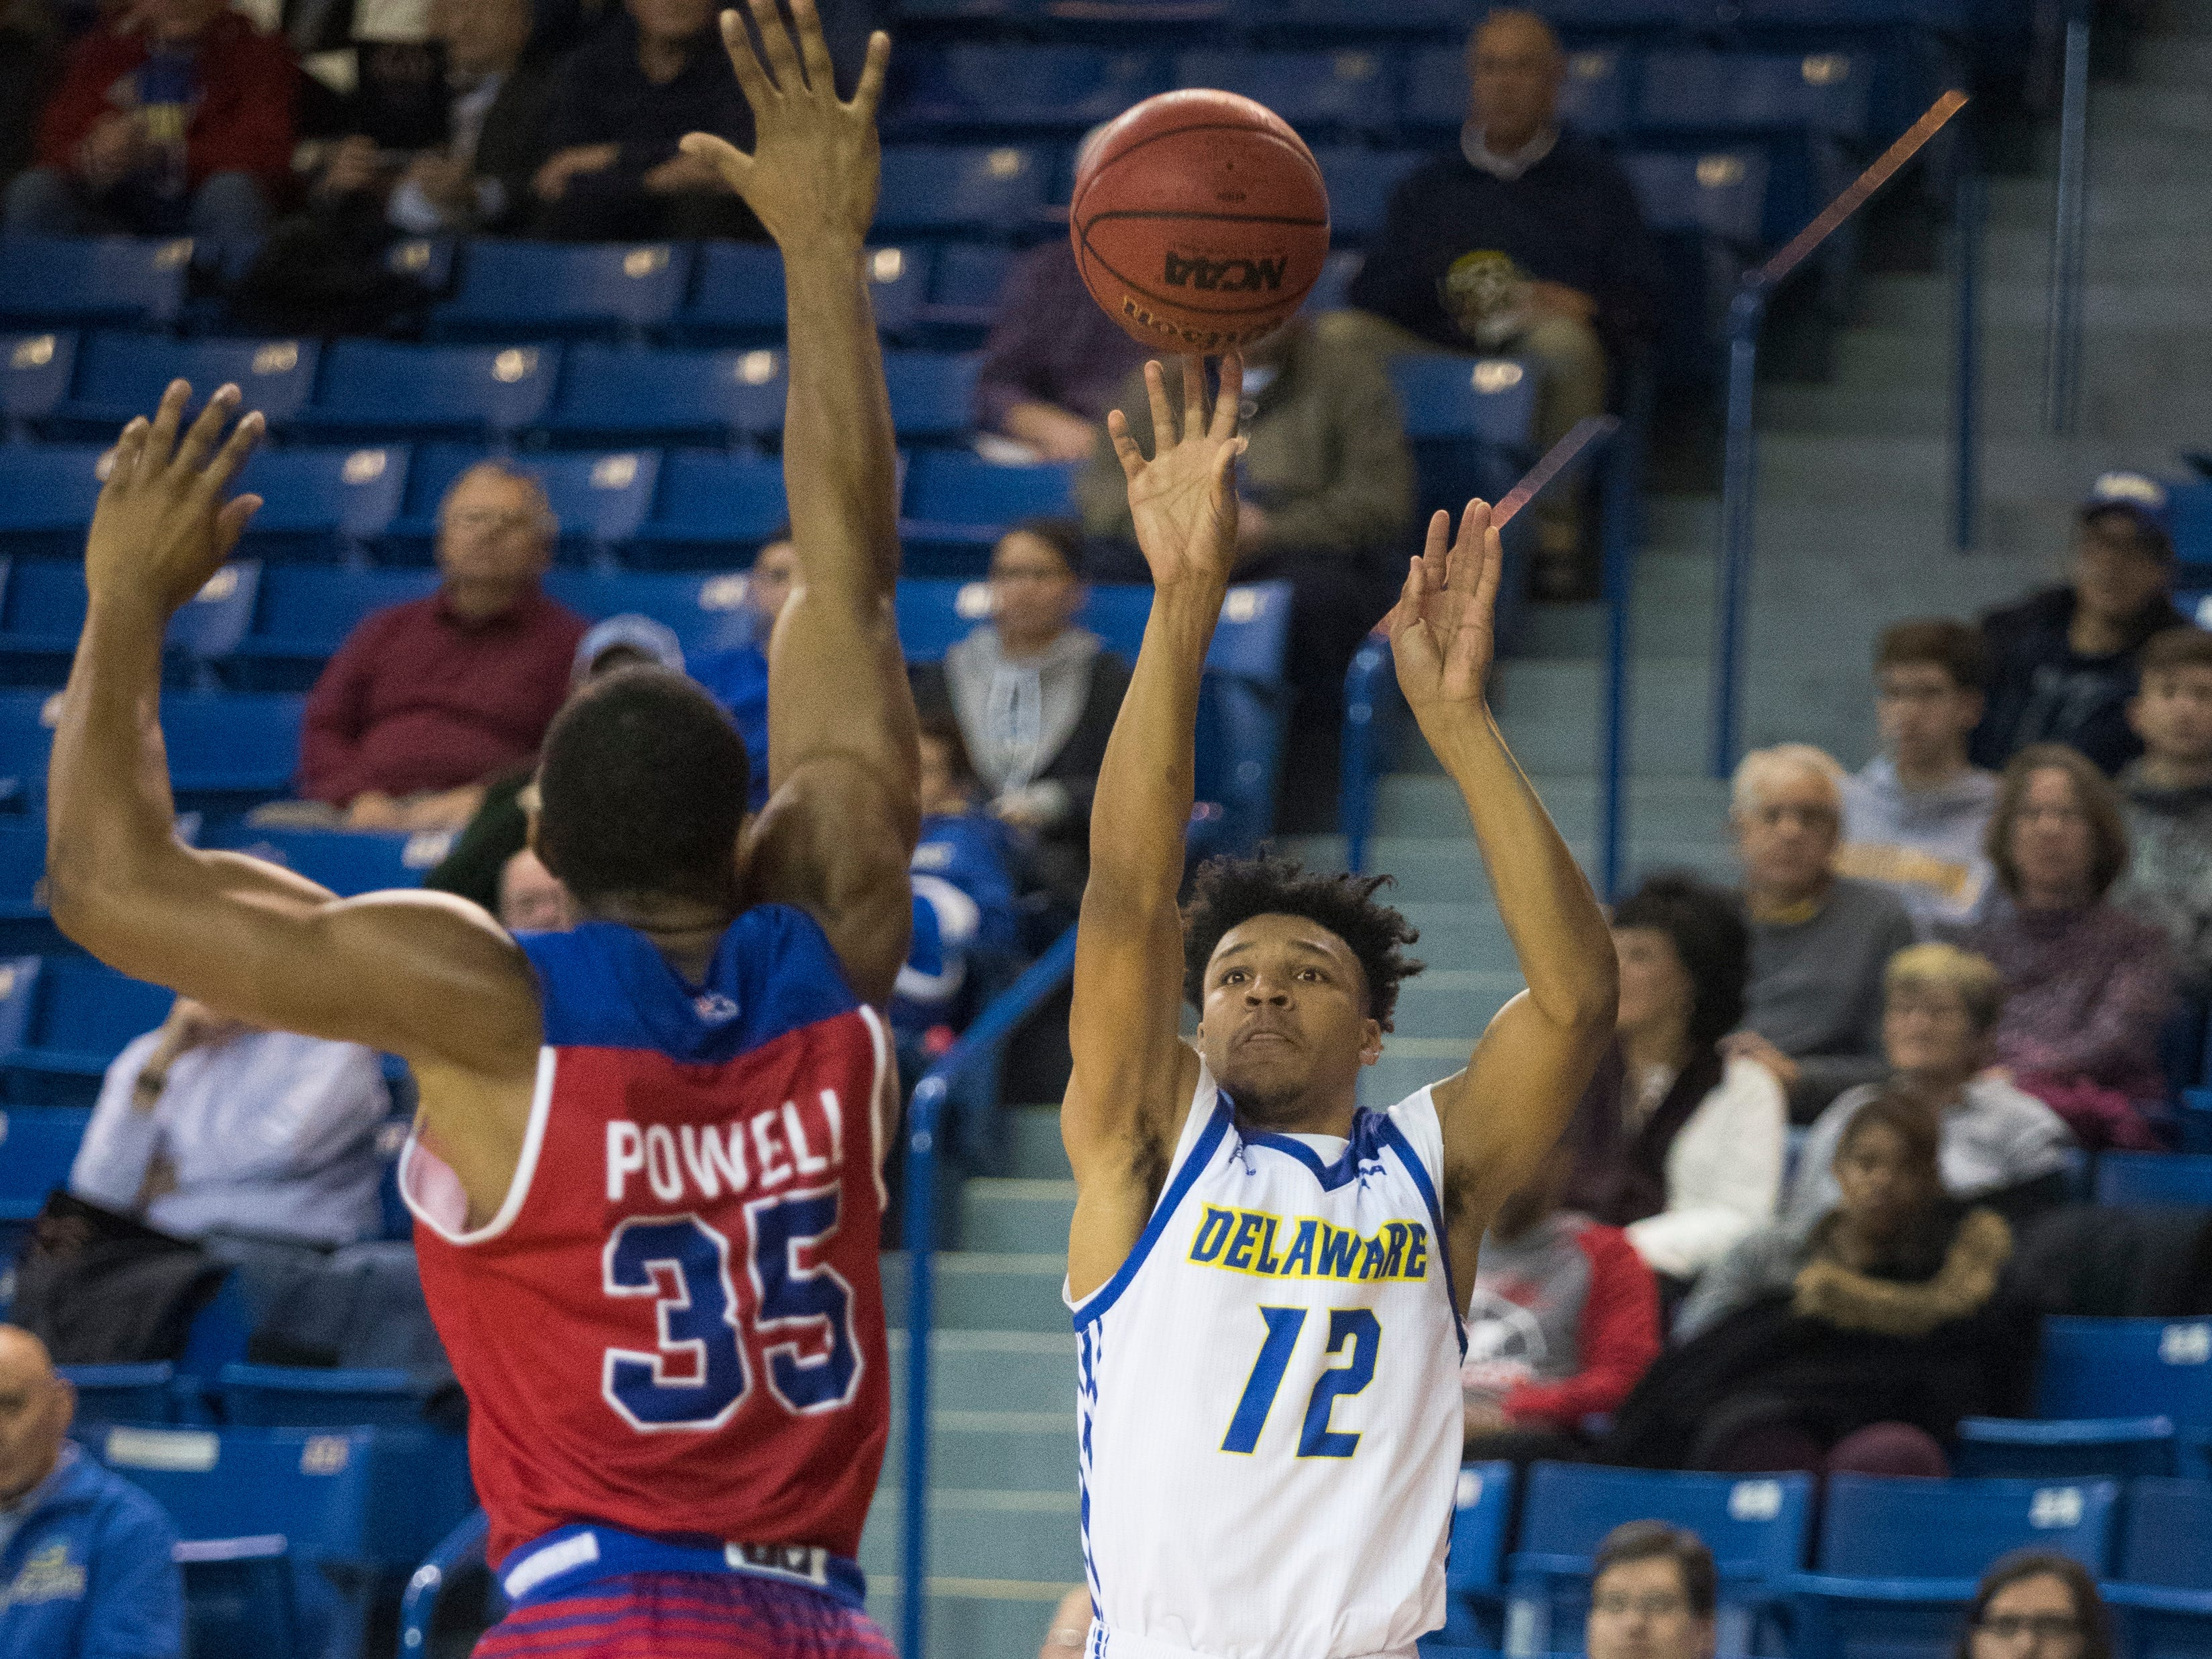 Delaware's Ithiel Horton (12) shoot a three-pointer while being guarded by Louisiana Tech's Oliver Powell (35) Monday at the Bob Carpenter Center. Delaware defeated Louisiana Tech 75-71.